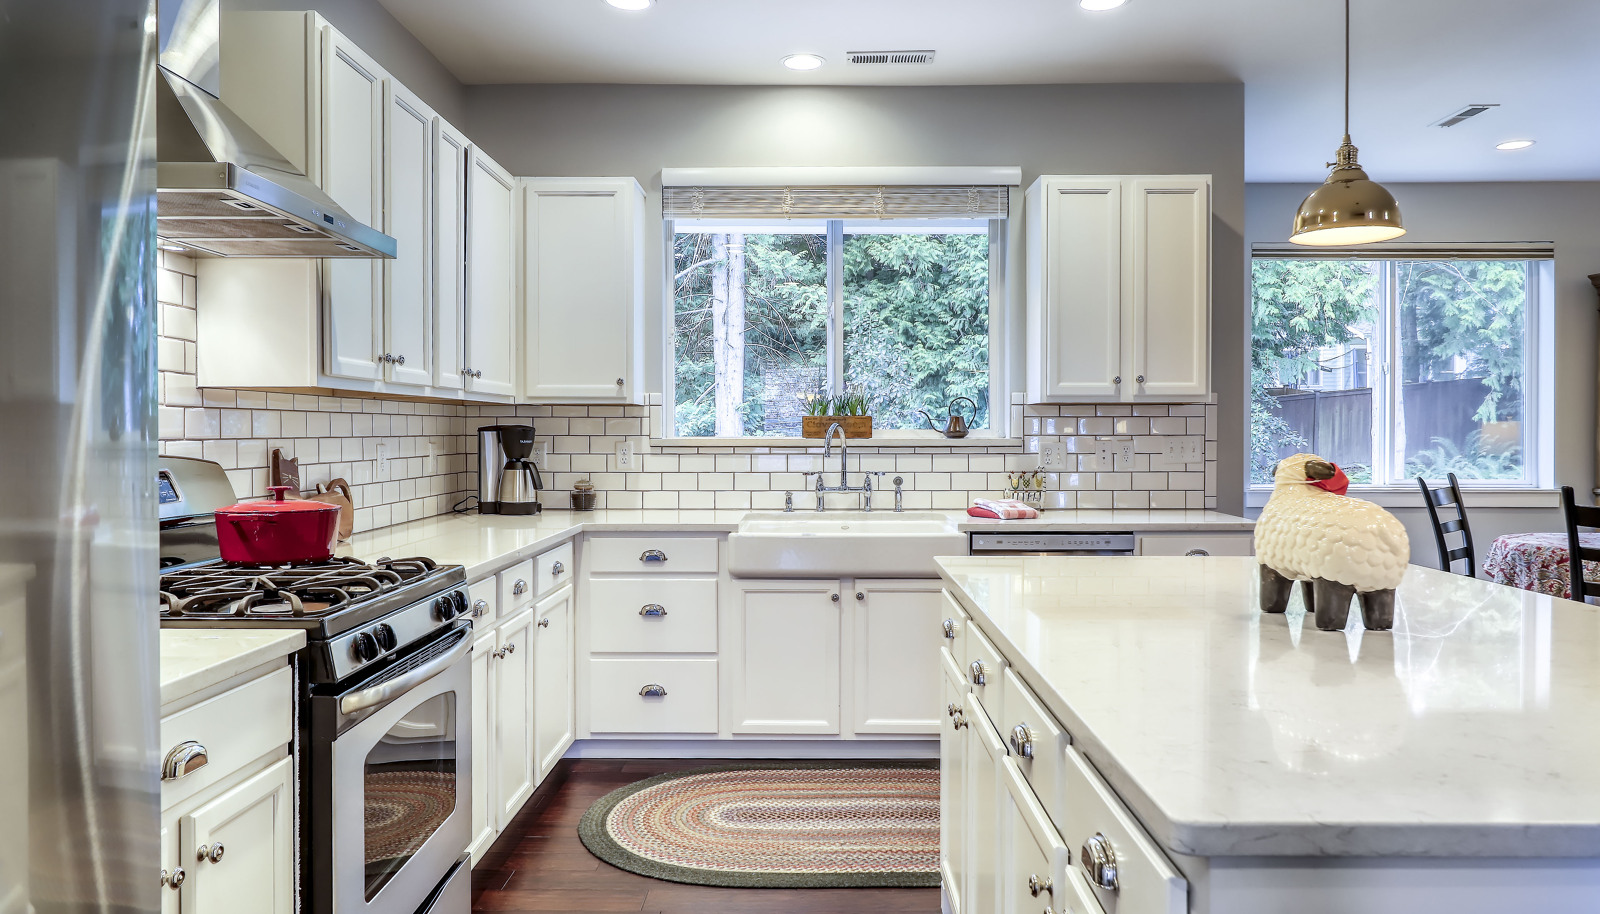 A kitchen dreams are made of!